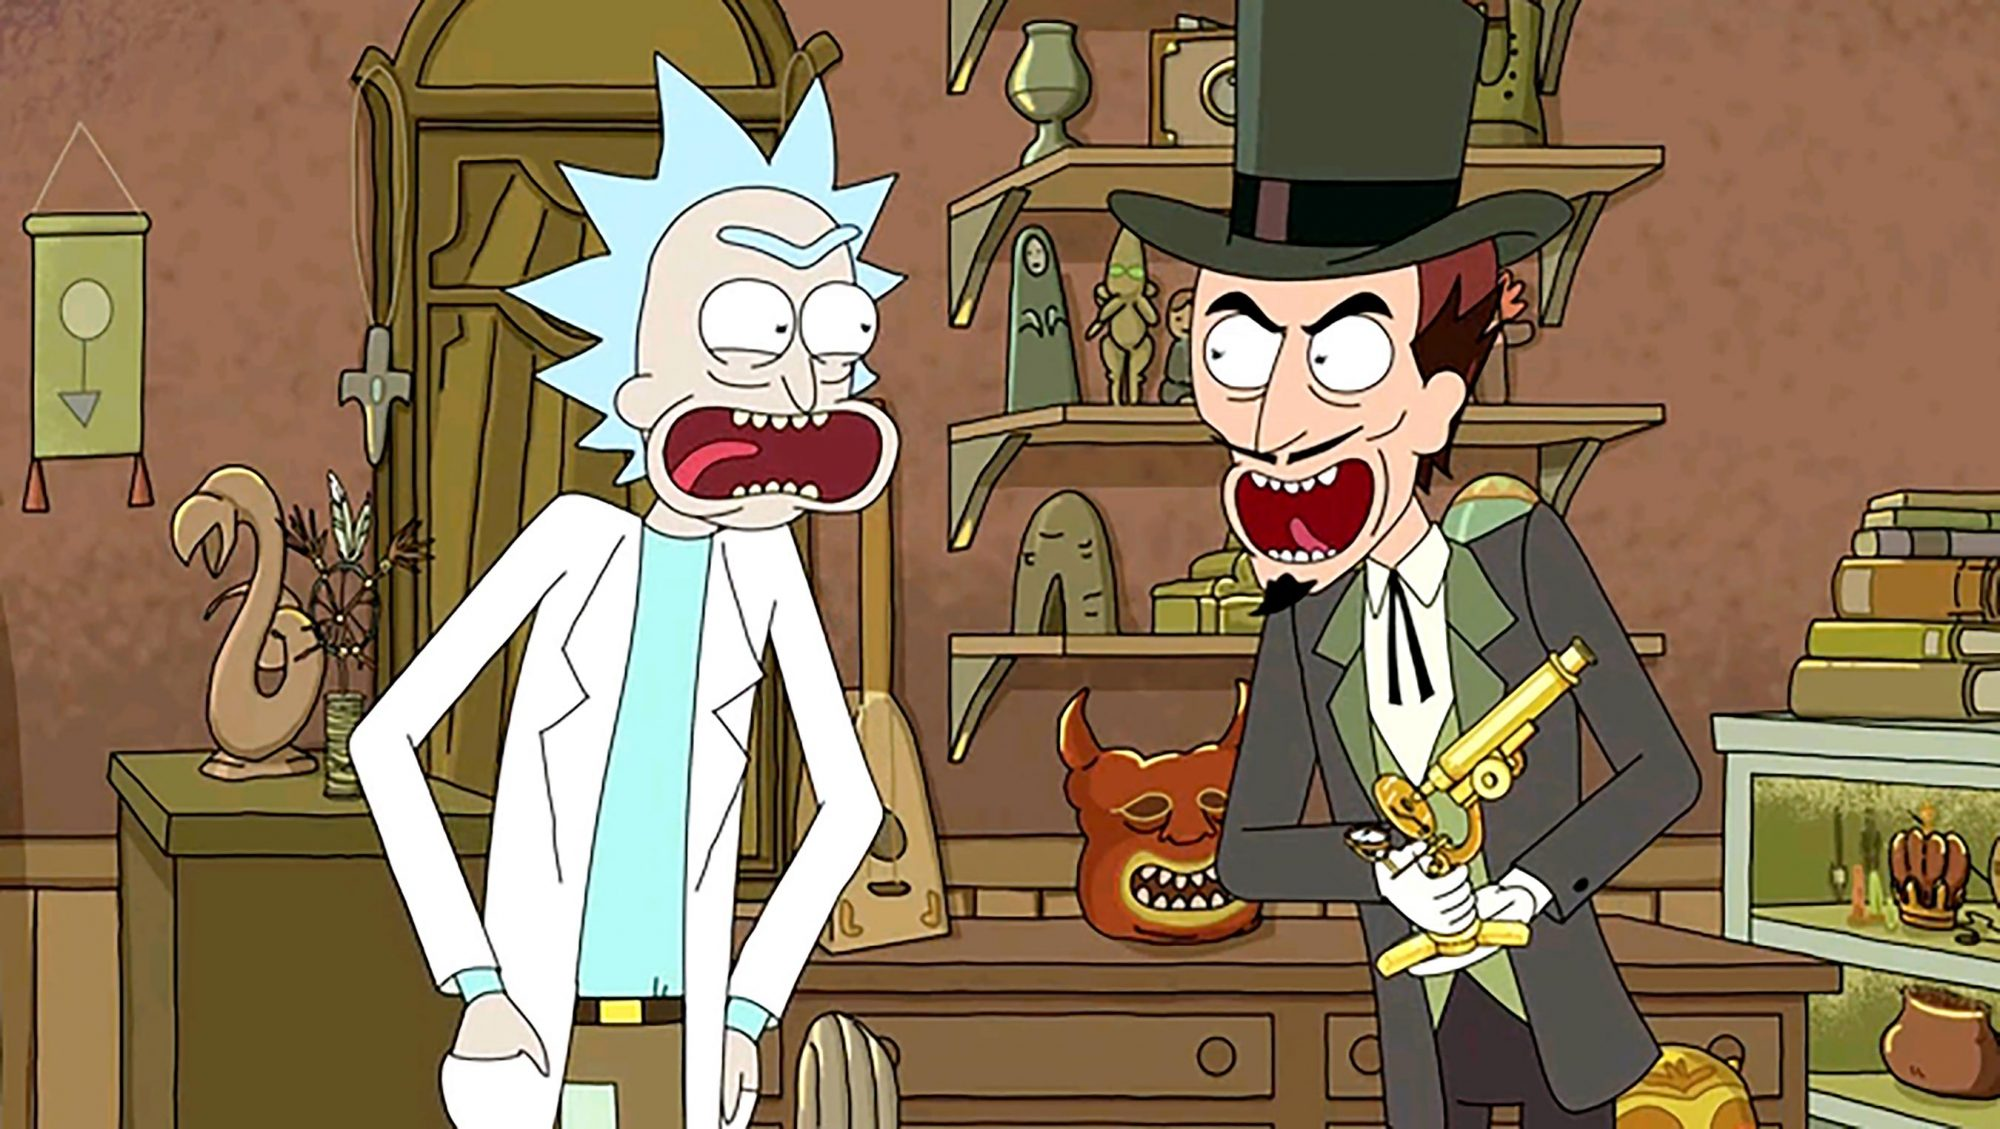 Ricky and Morty - Needful Things (Season 1, Episode 9)